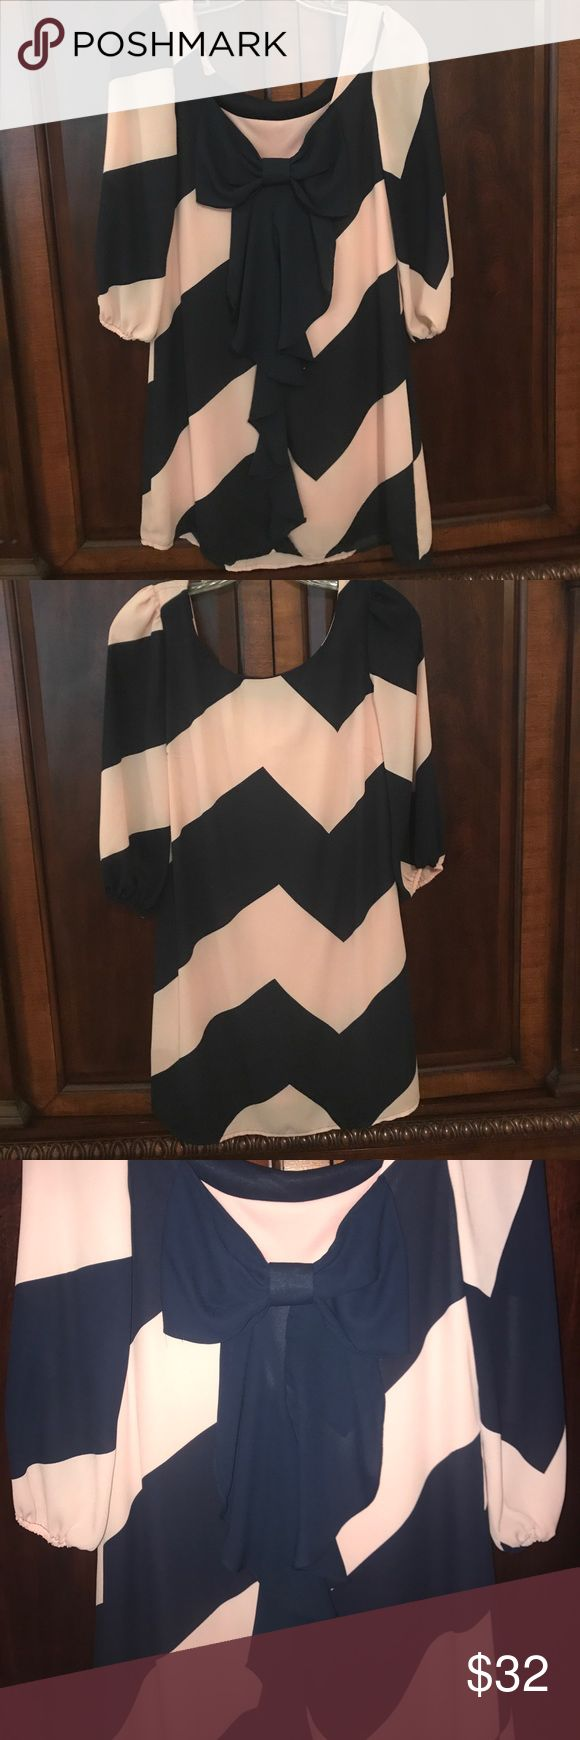 Pink and Navy Chevron Bow Back Dress- LIKE NEW This dress is so cute! It has a scoop back with a ruffled bow that extend to the bottom of the dress. I purchased it from Dillards and rarely wore it, so it is in PERFECT condition. Please let me know if you have any questions! Gianni Bini Dresses